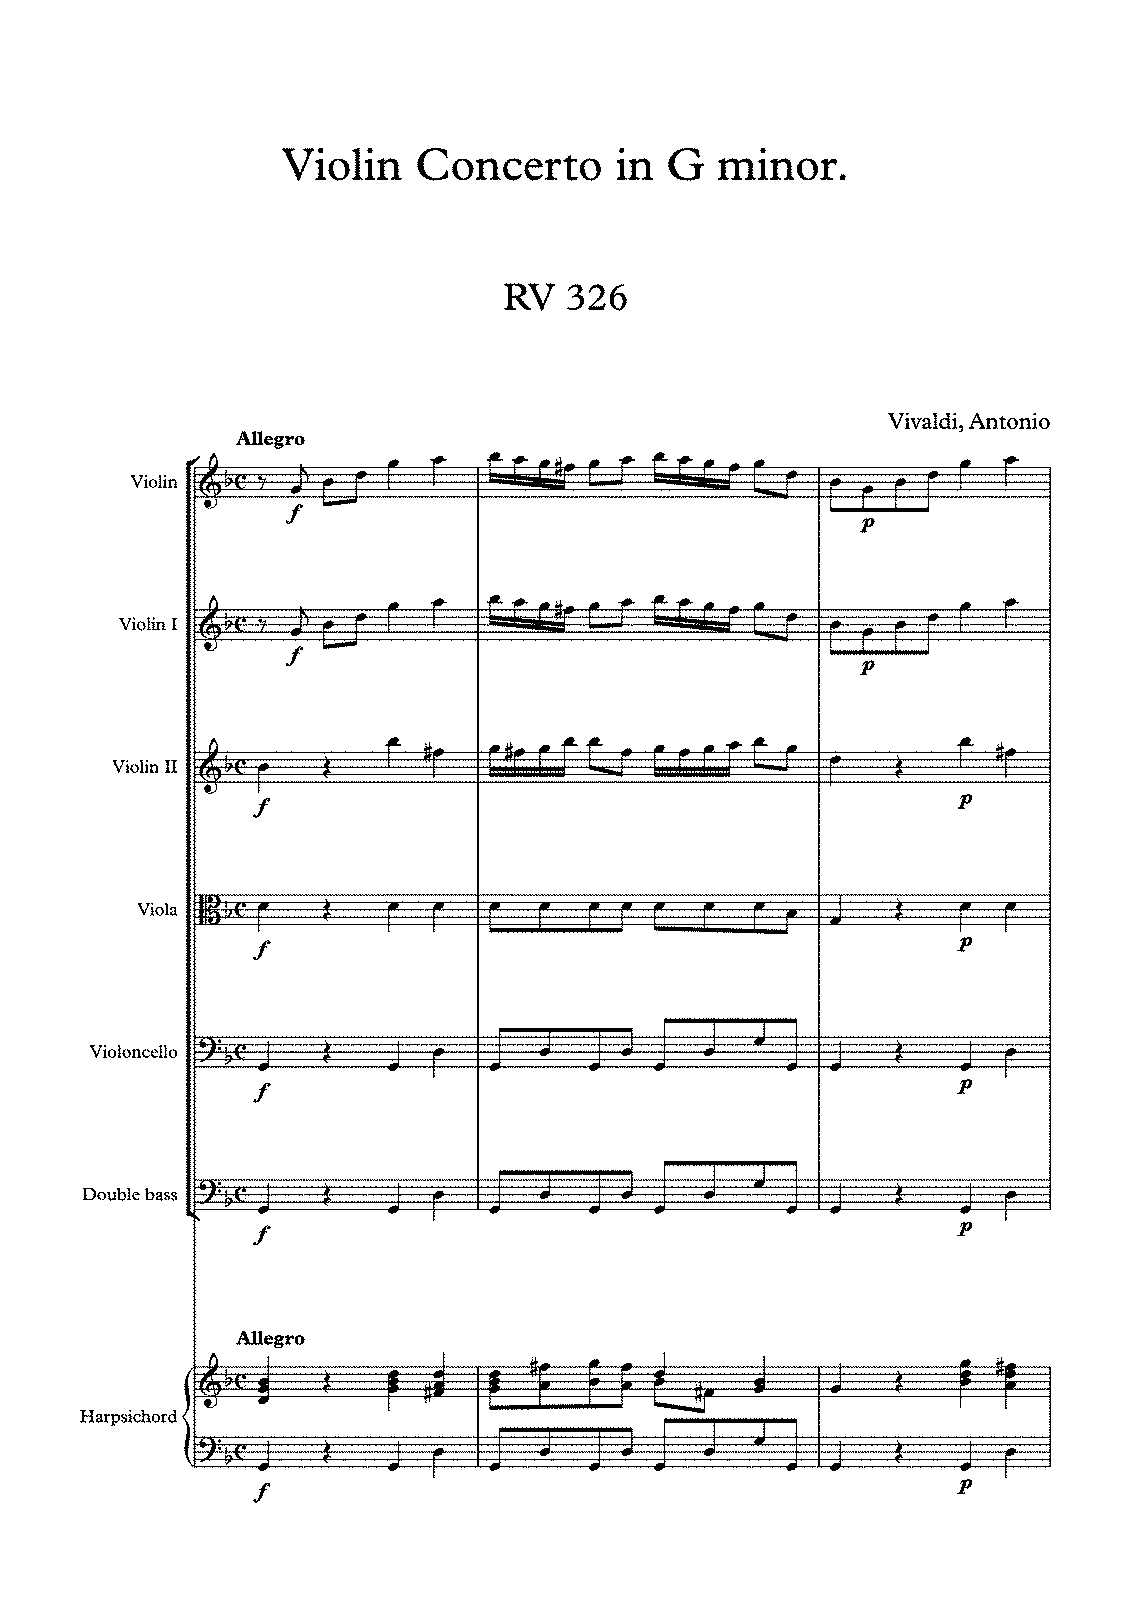 PMLP169474-Antonio Vivaldi - Violin Concerto in G minor, RV 326.pdf